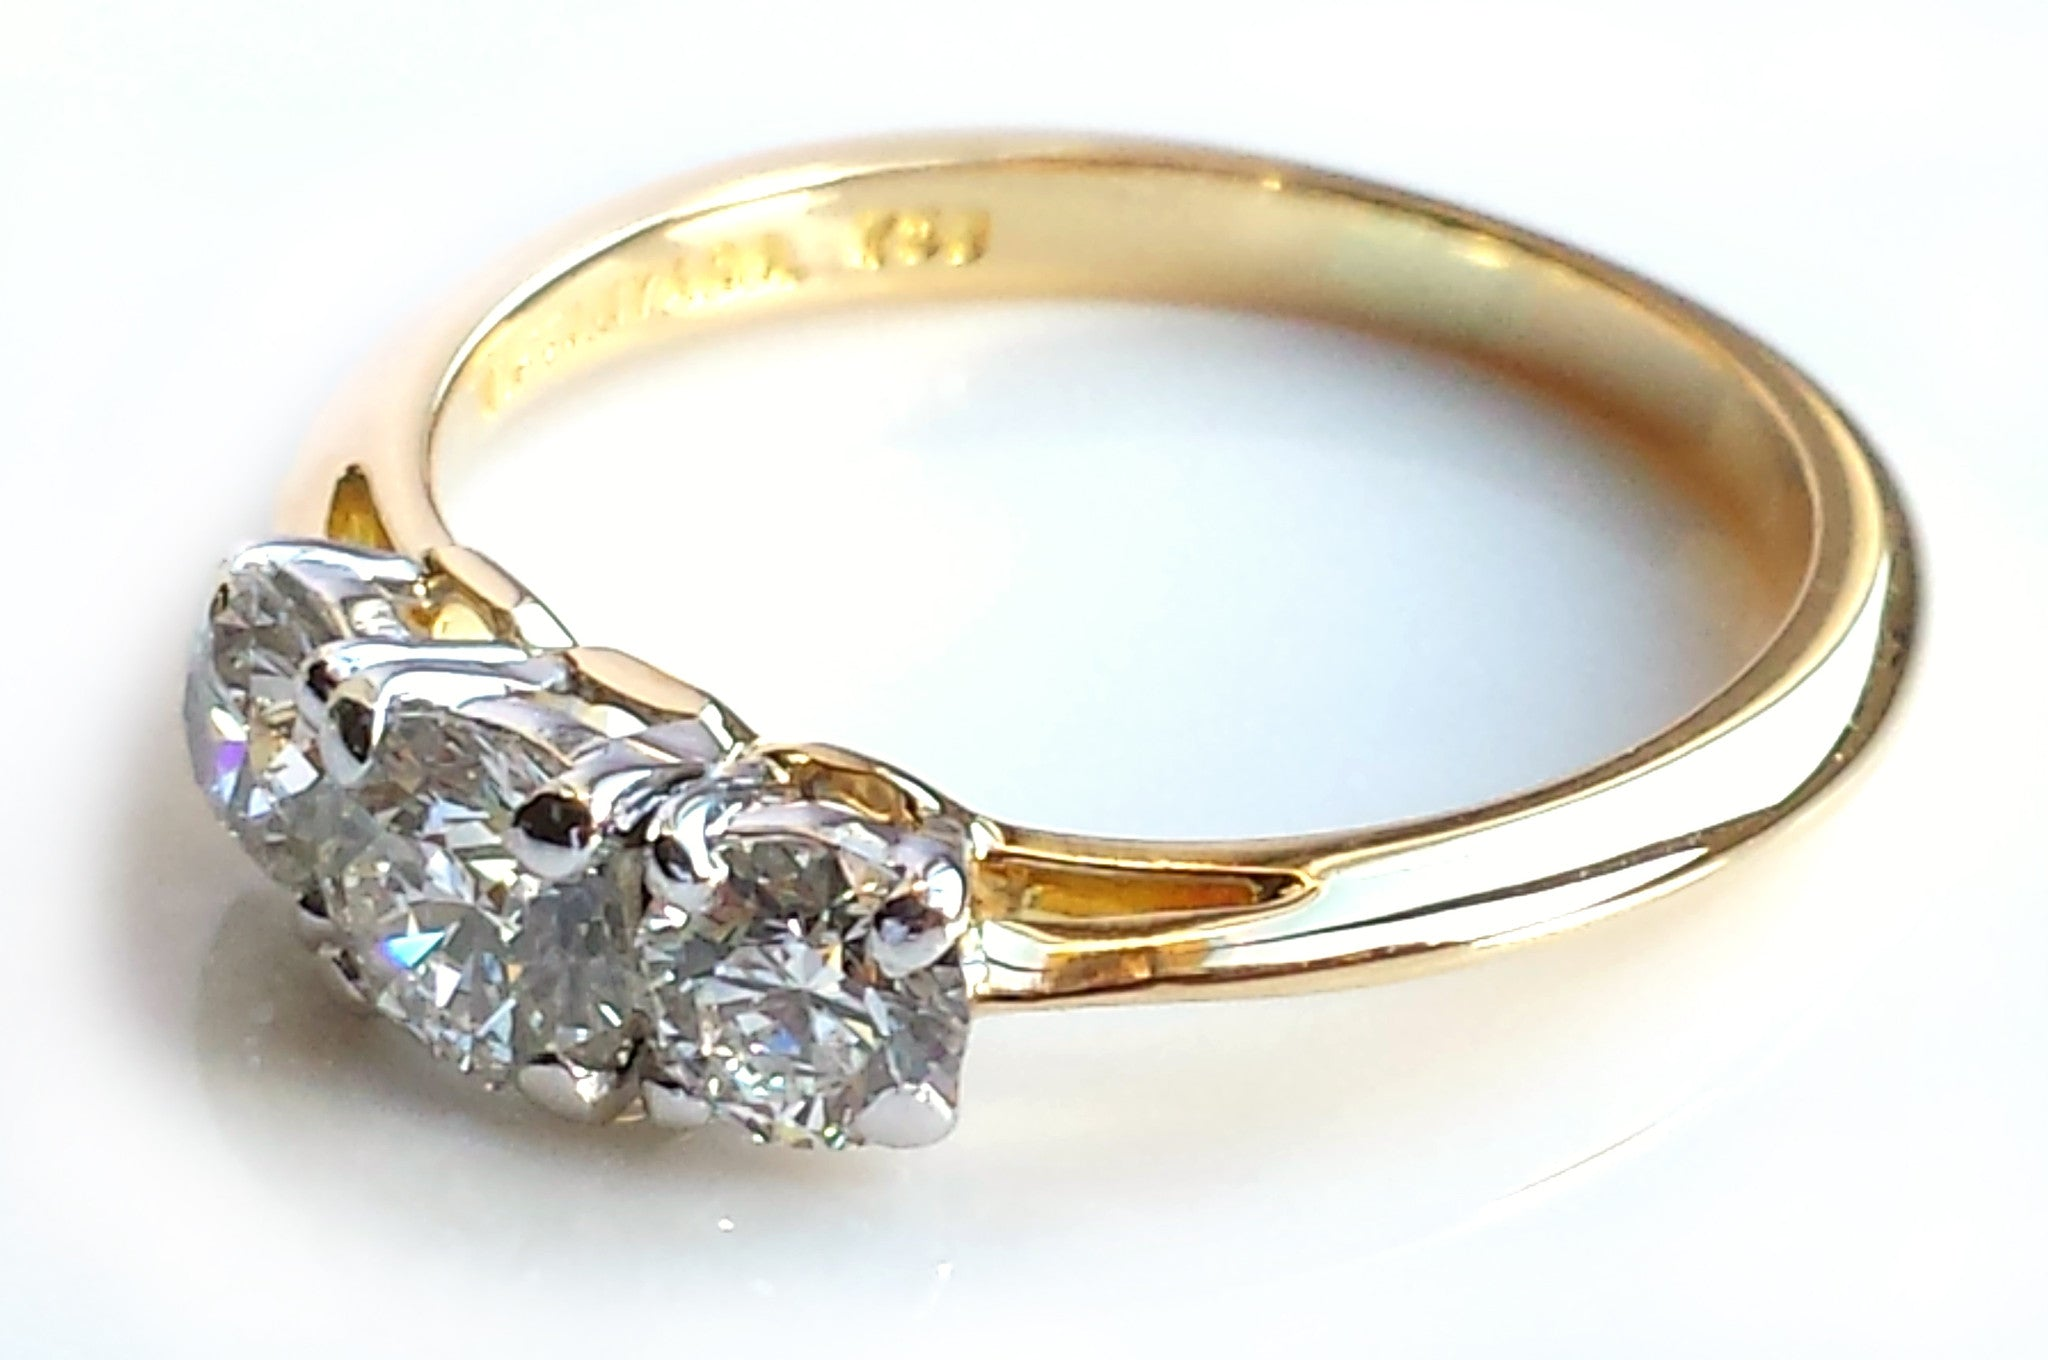 lloyd to add engagement stone diamond mark ring product platinum wishlist jewellery